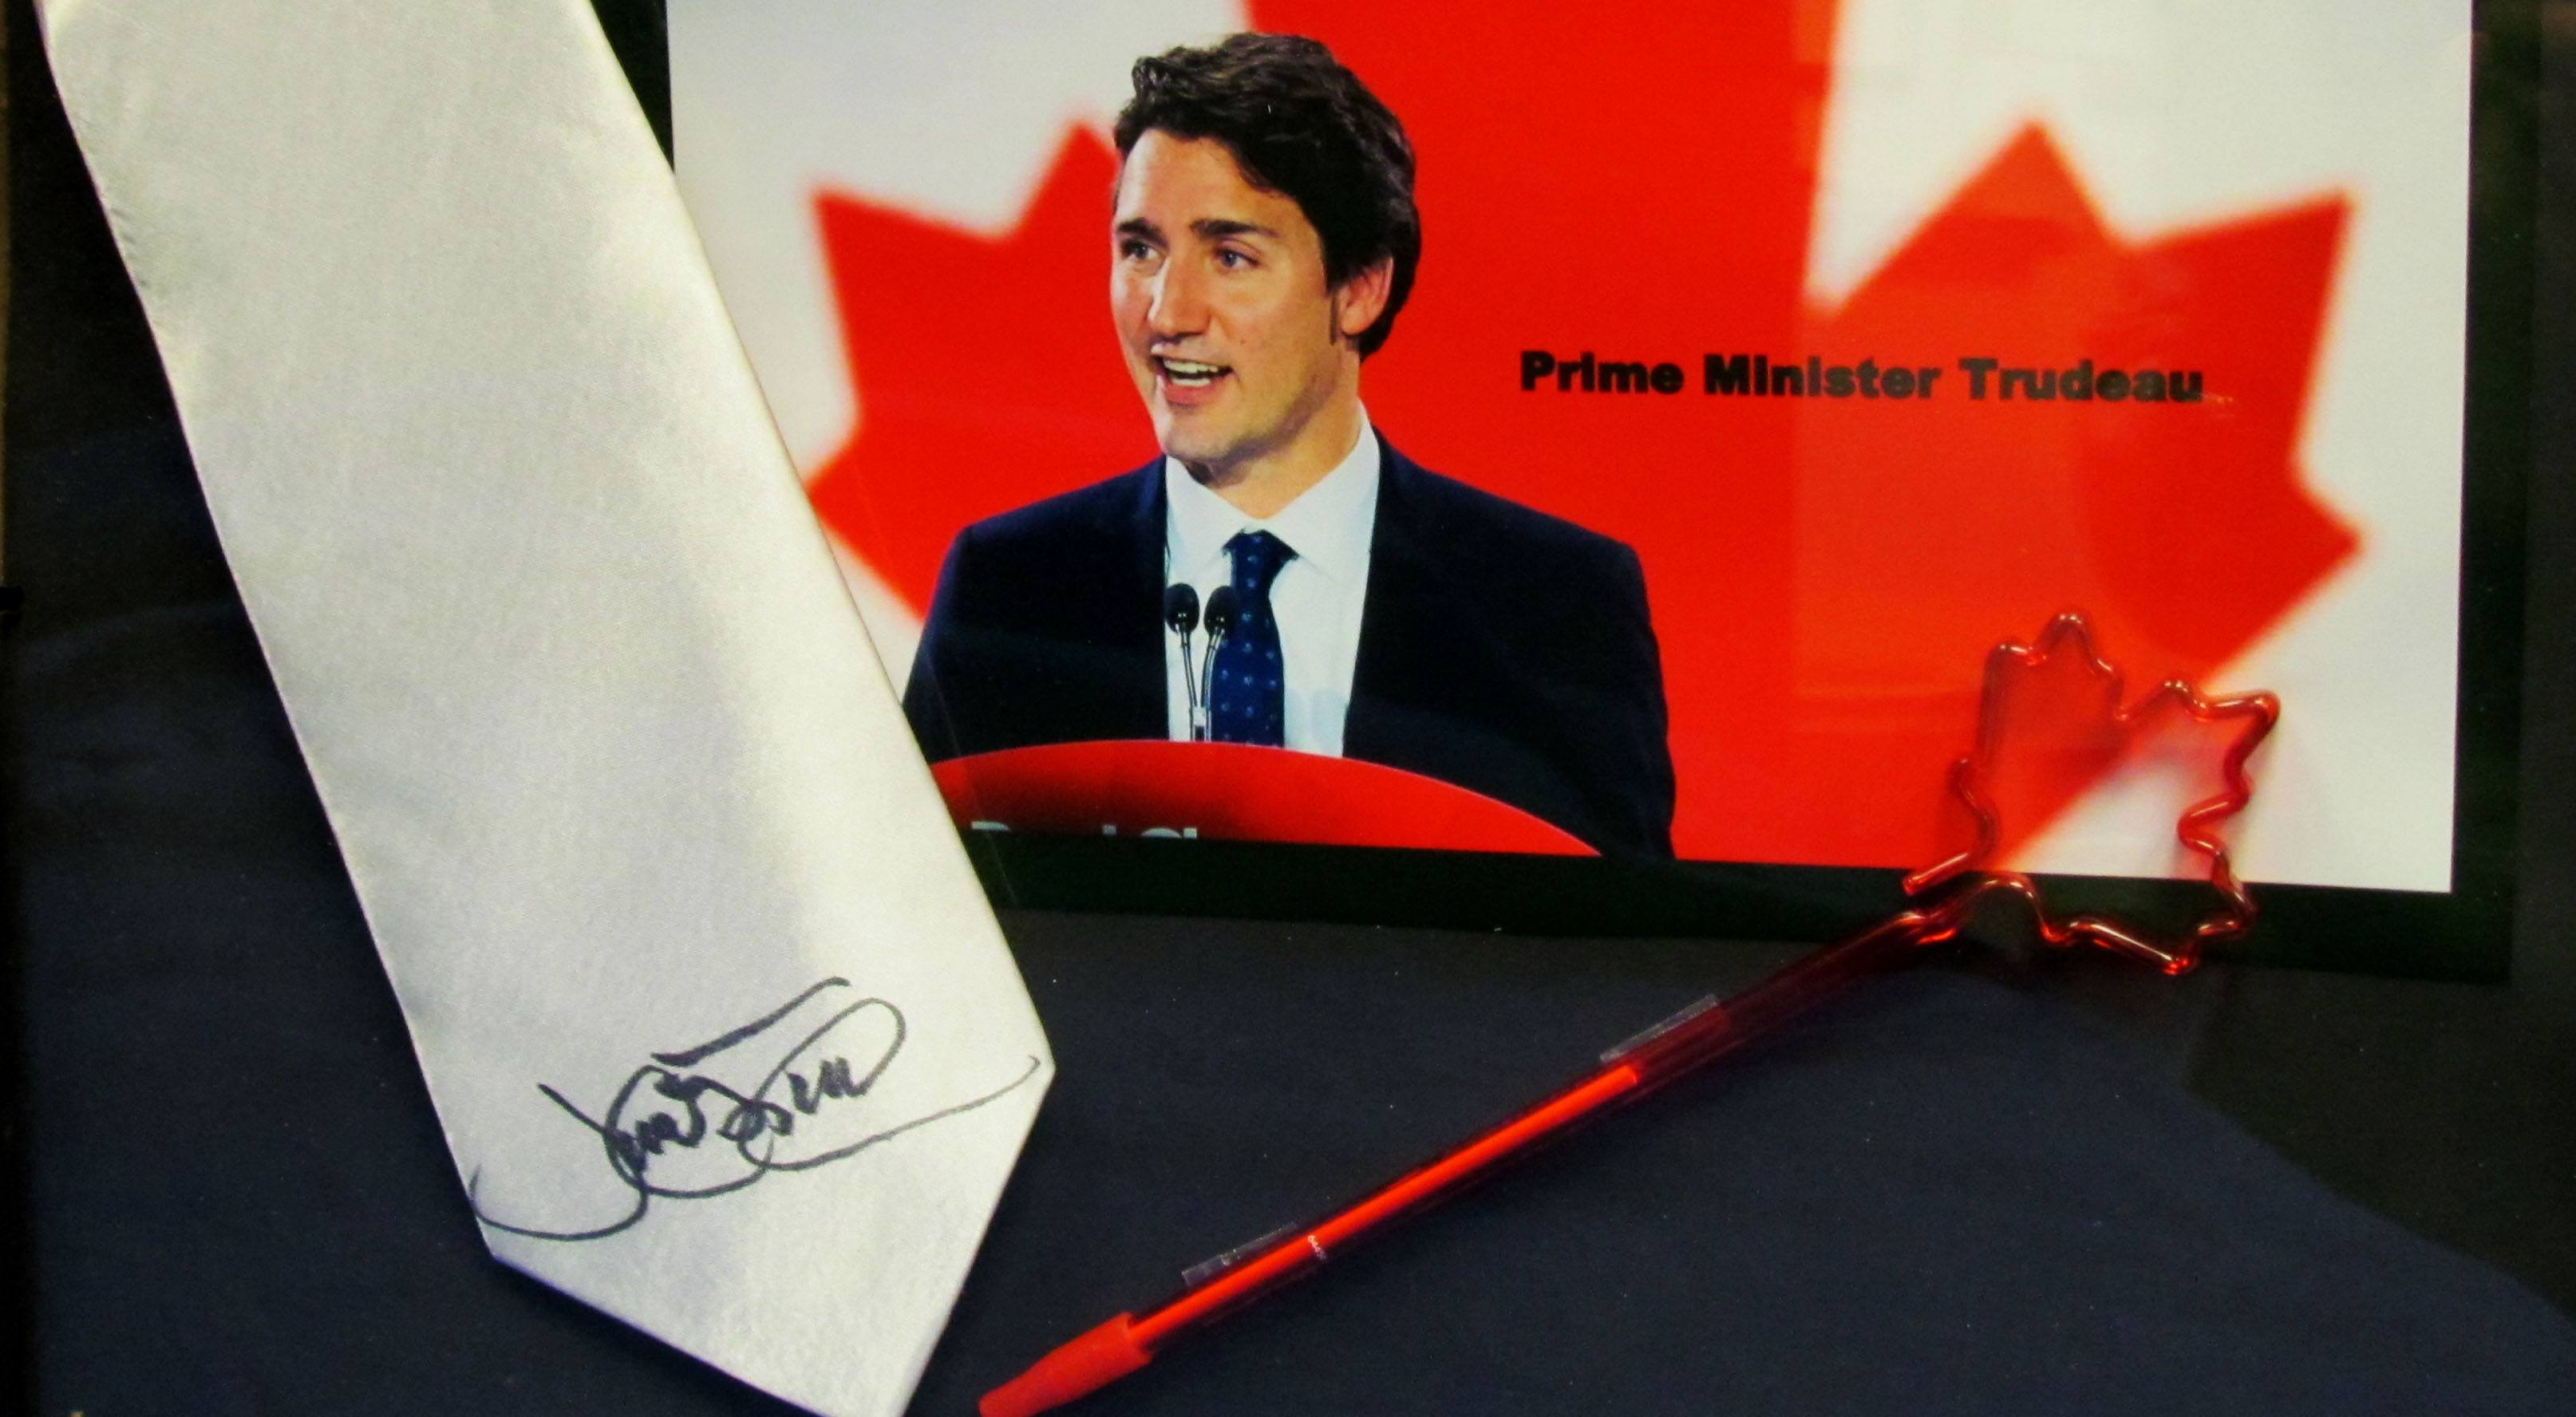 Justin trudeau has signed a tie for auctioning off on tie day royal city jewellers